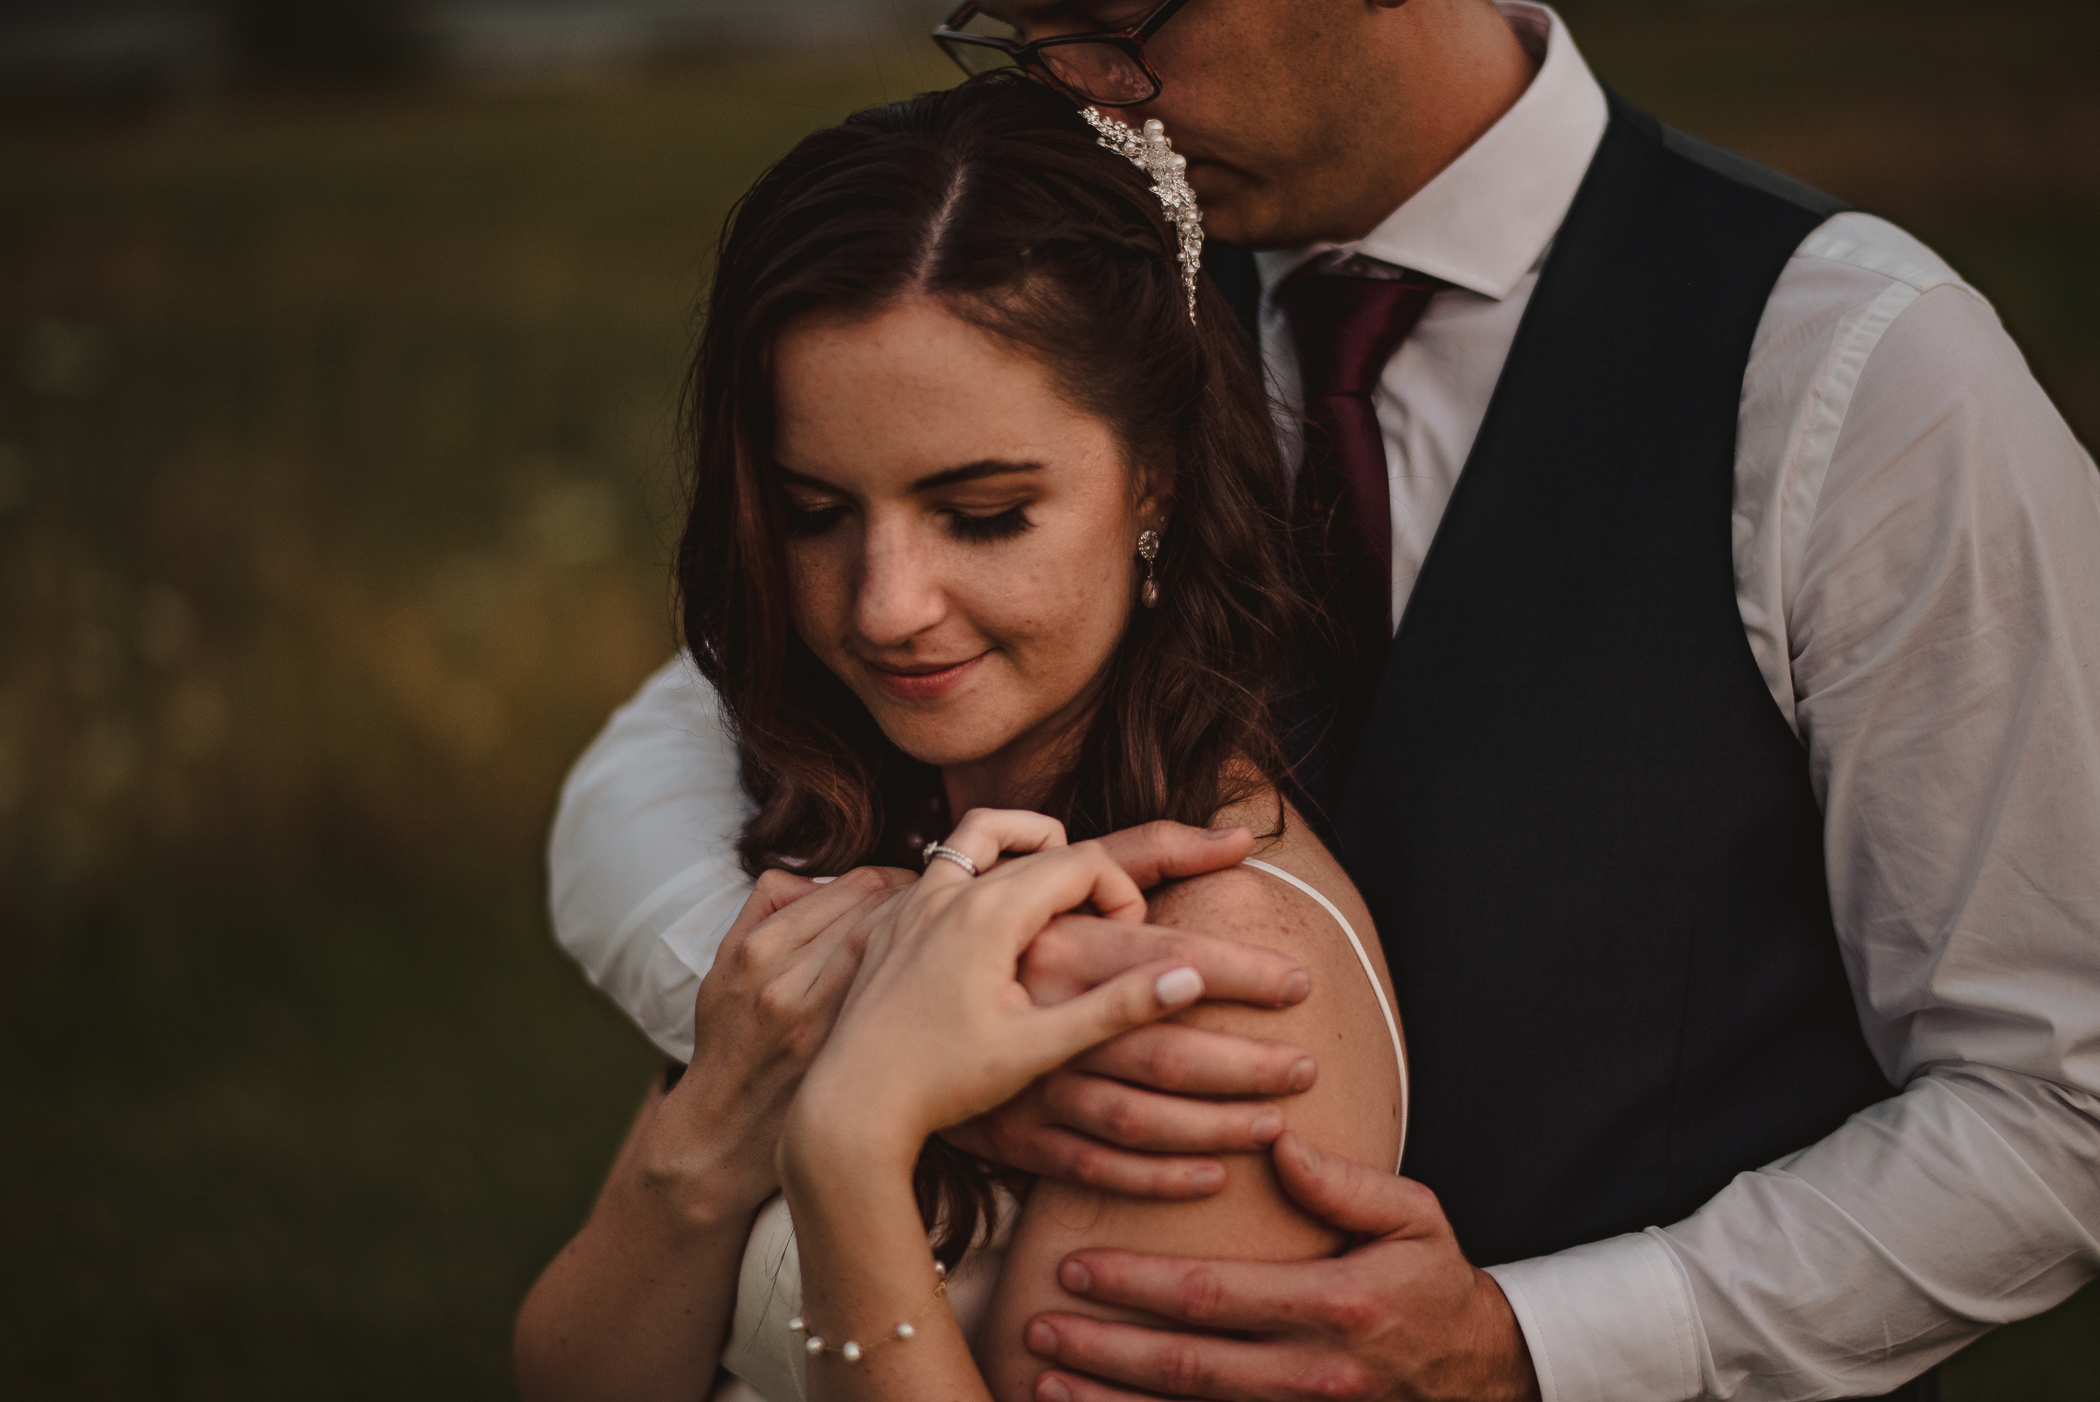 Fraser river lodge wedding portrait